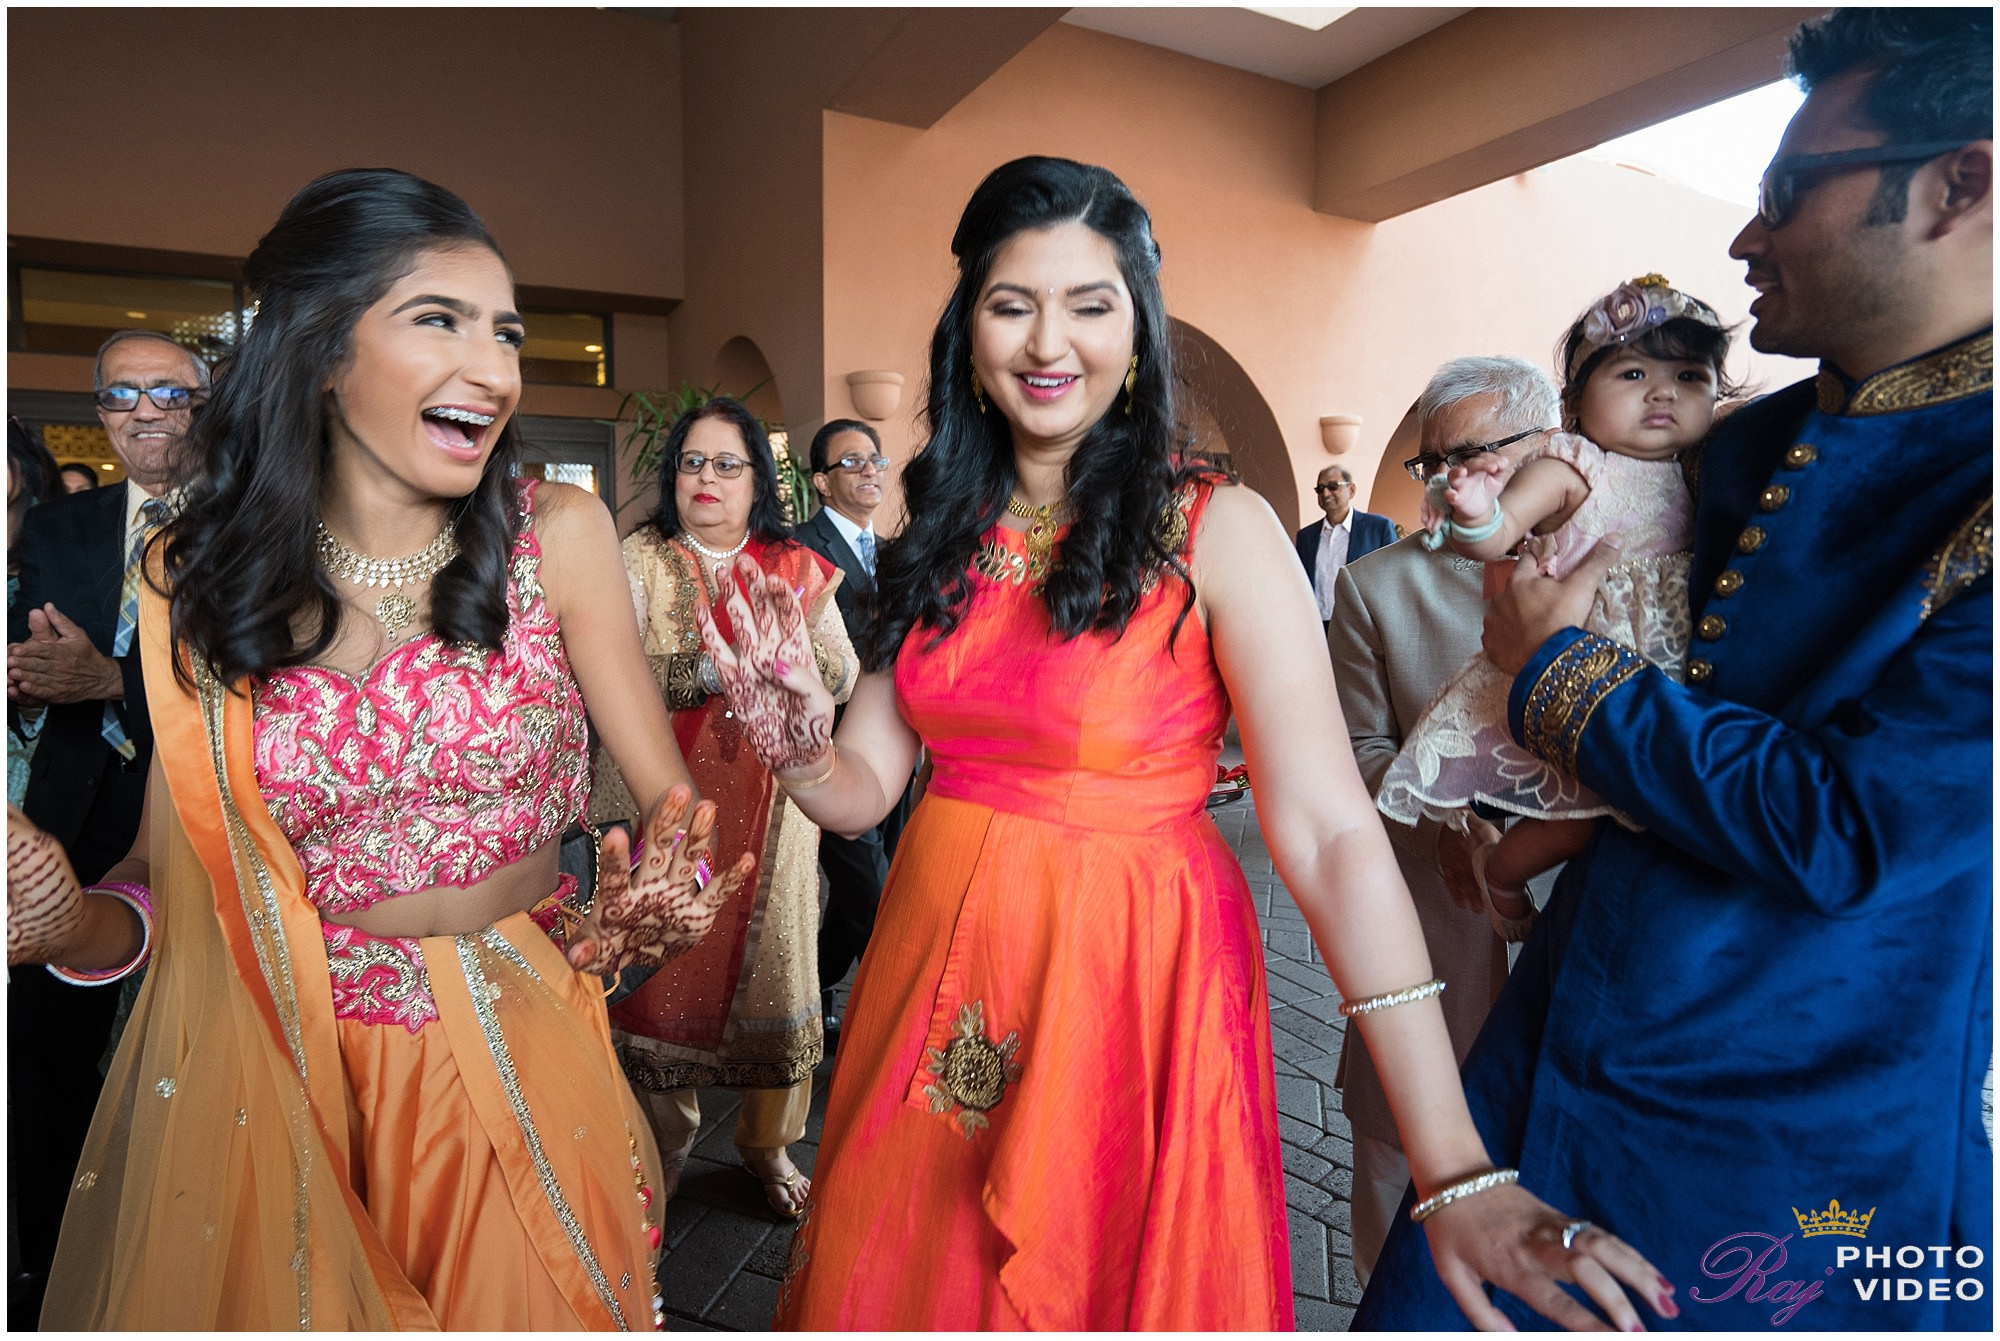 Scottsdale_Marriott_at_McDowell_Mountains_Arizona_Indian_Wedding_Sapna_Shyam-41.jpg